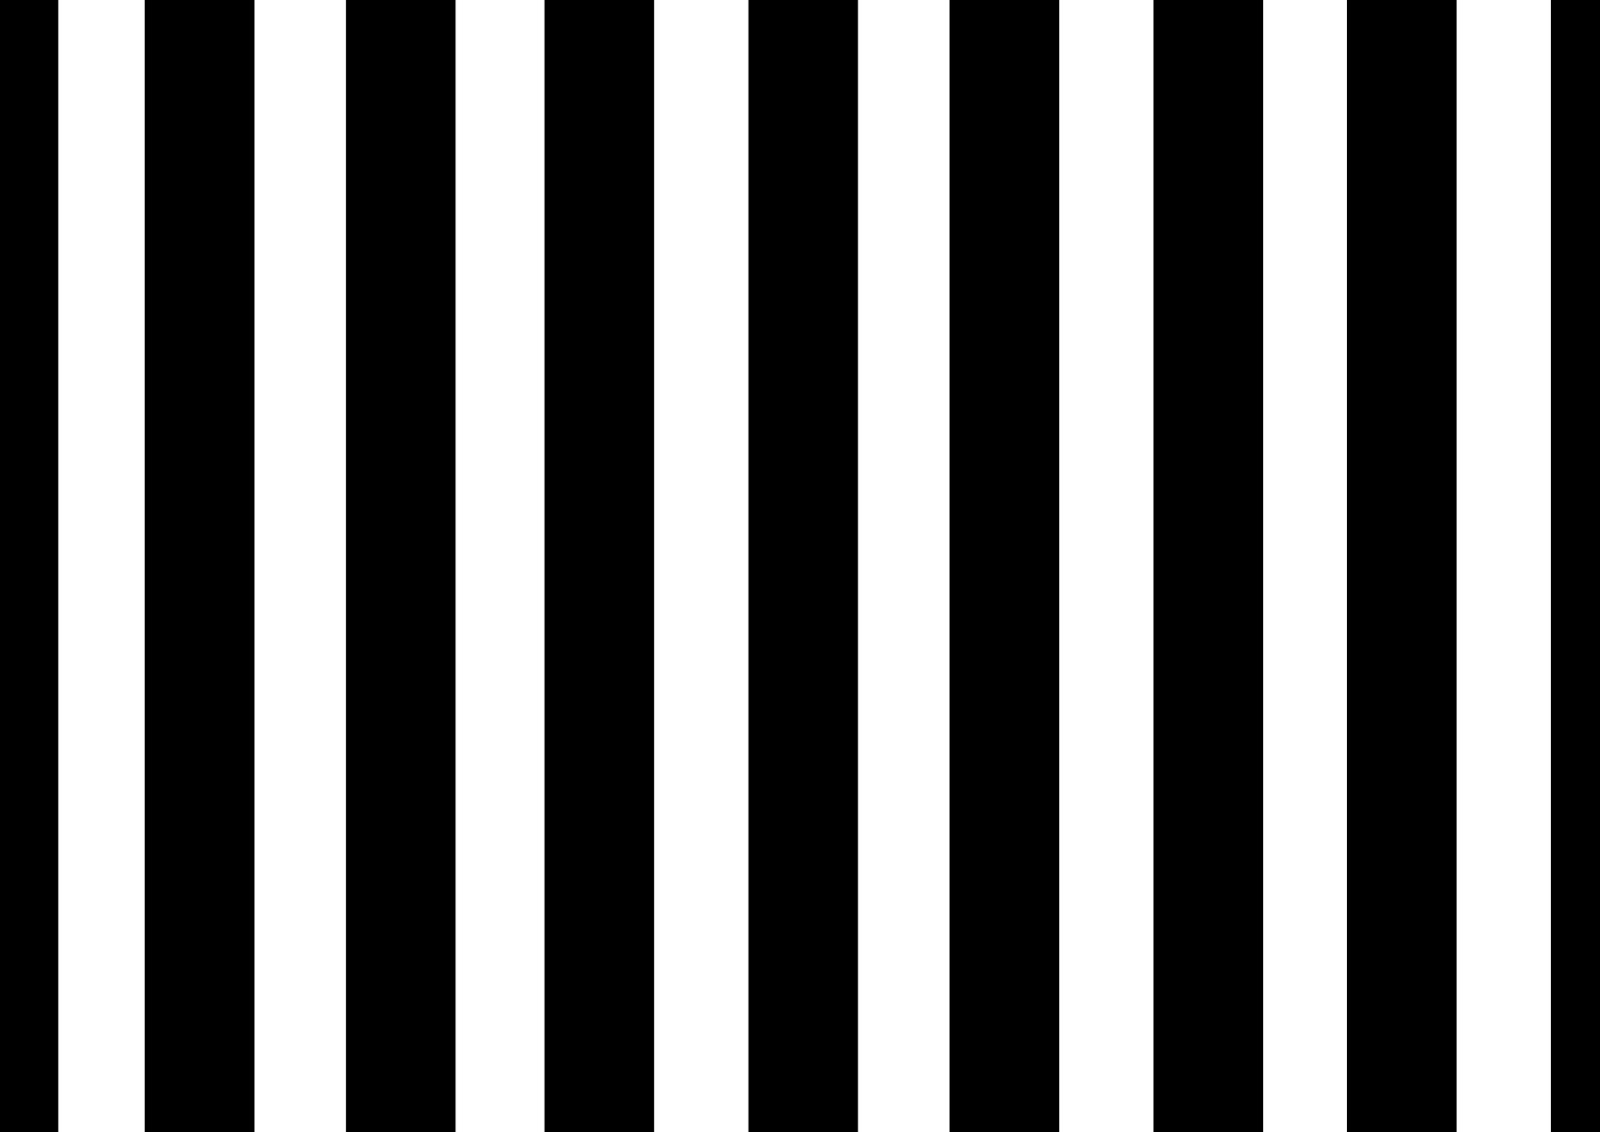 black and white stripes wallpaper   Quotekocom 1600x1132